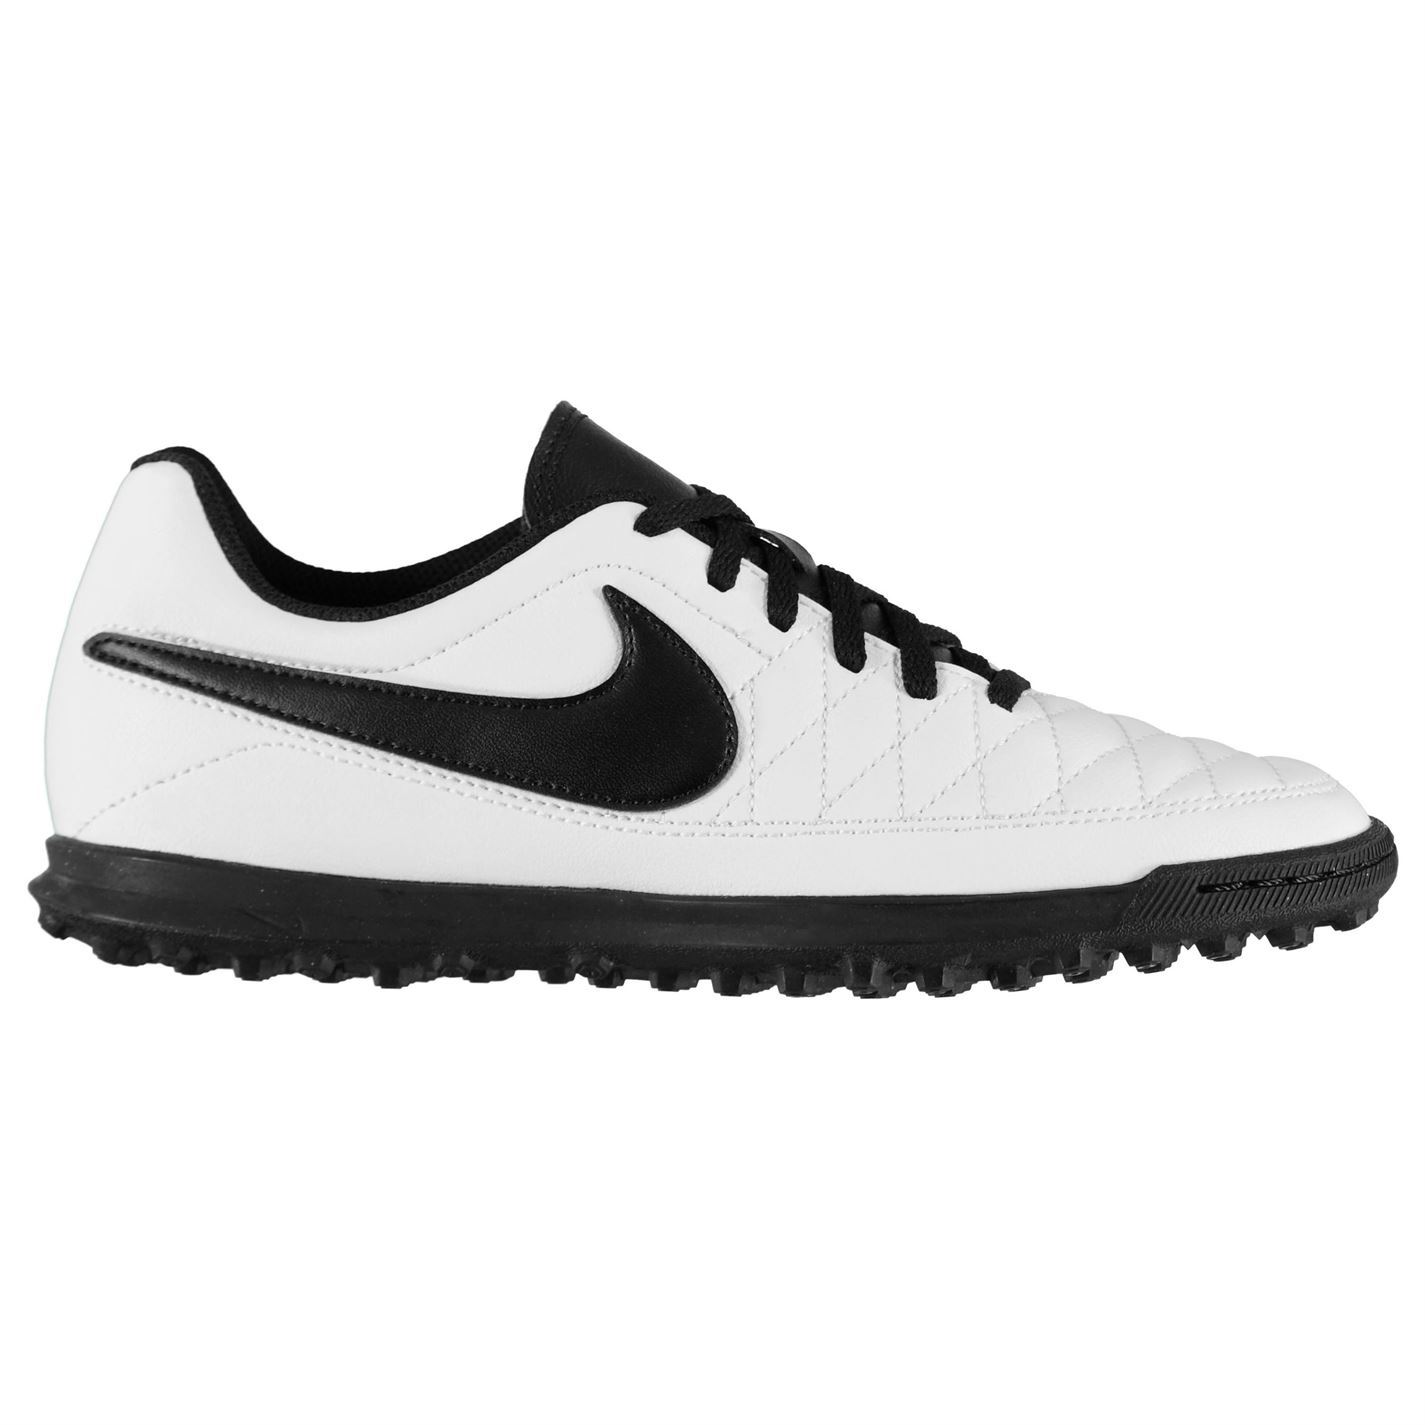 Nike-majestry-Astro-Turf-Football-Baskets-Pour-Homme-Football-Baskets-Chaussures miniature 13